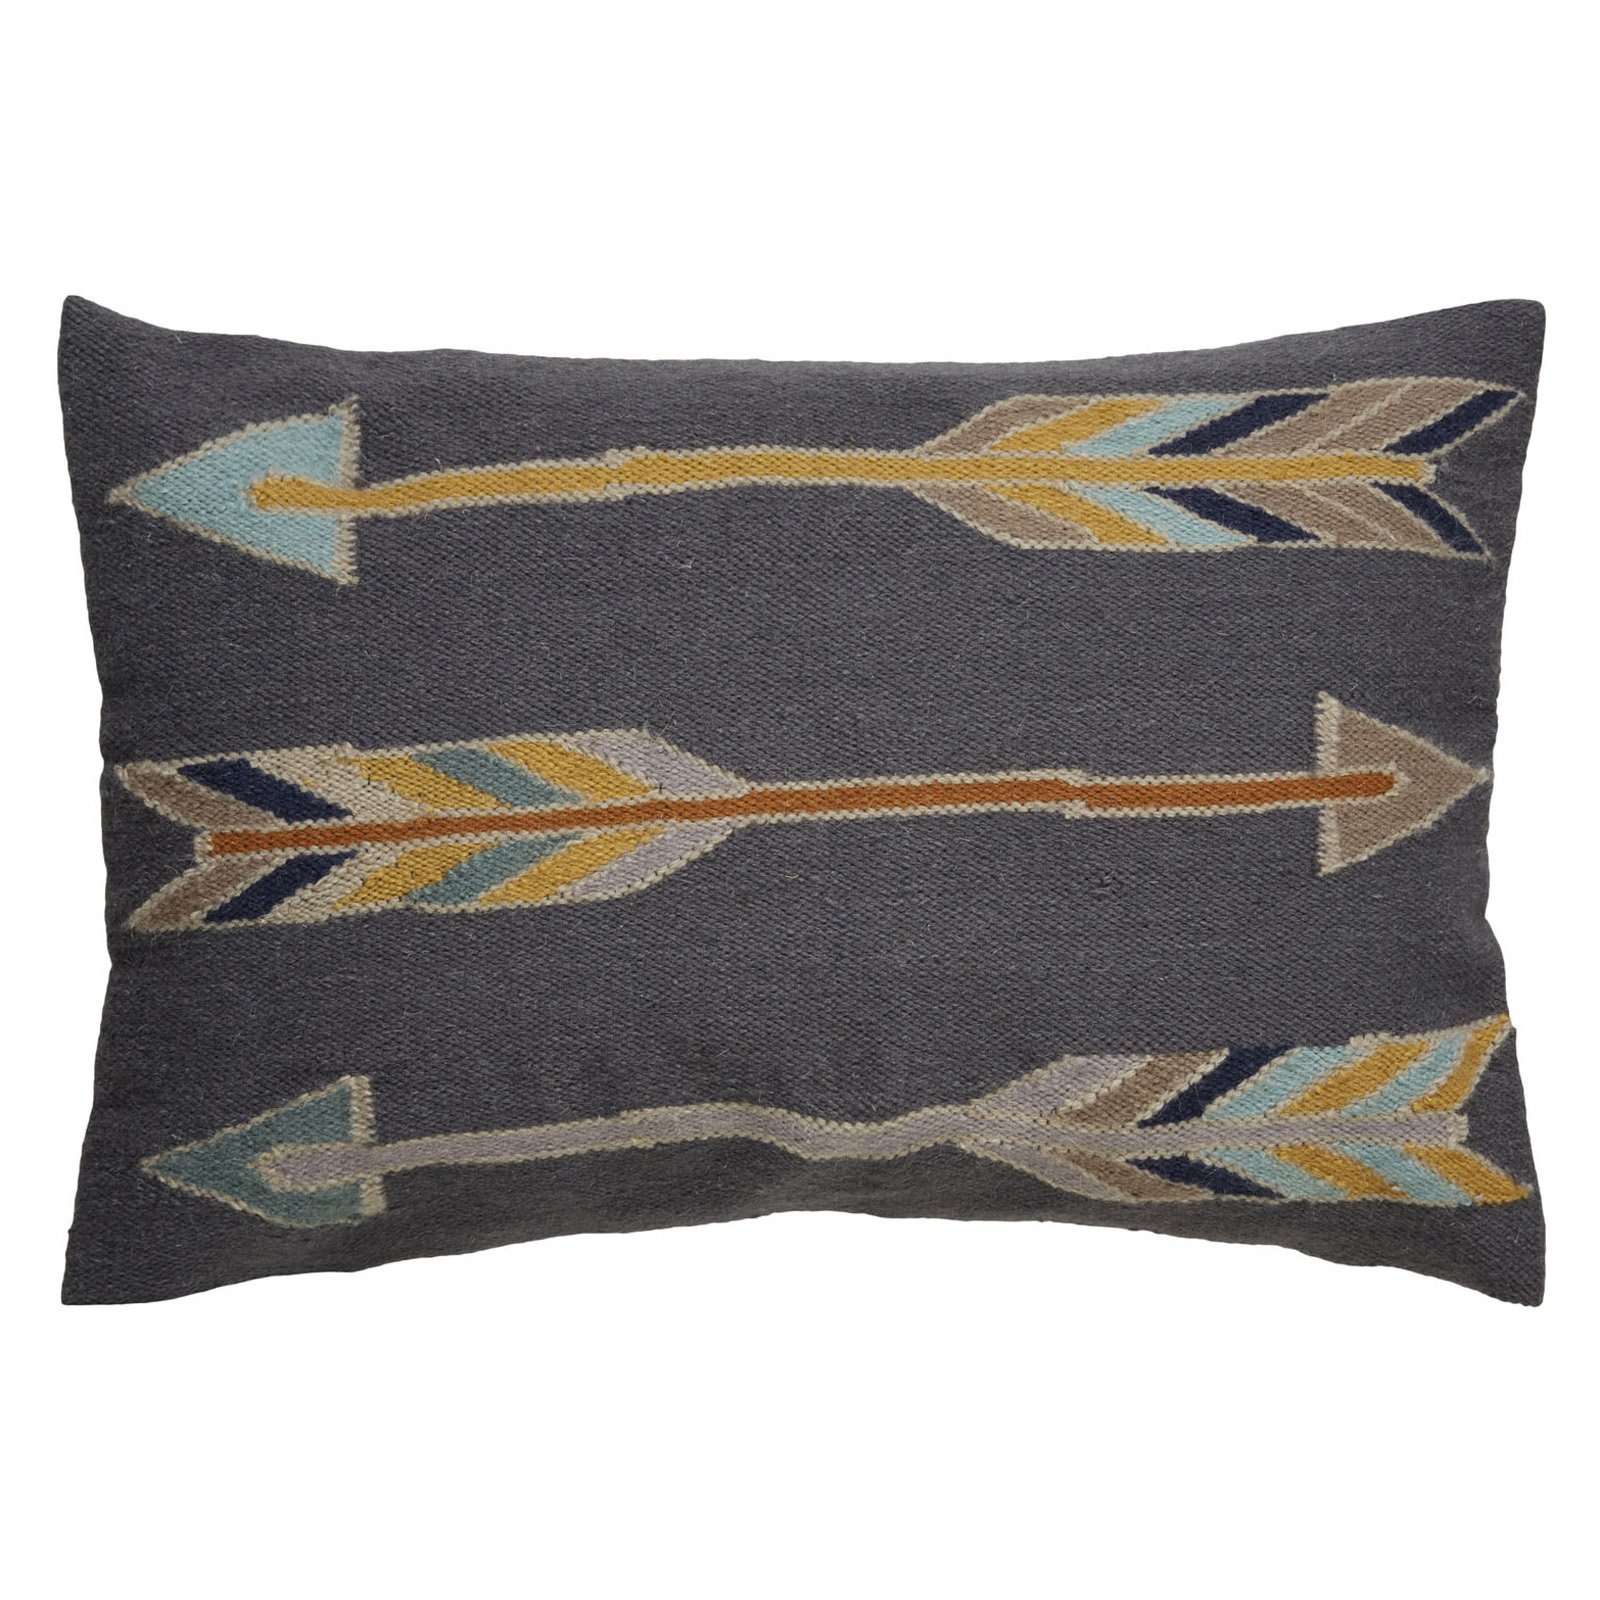 Jaipur Arrow Pattern Wool and Cotton Decorative Pillow